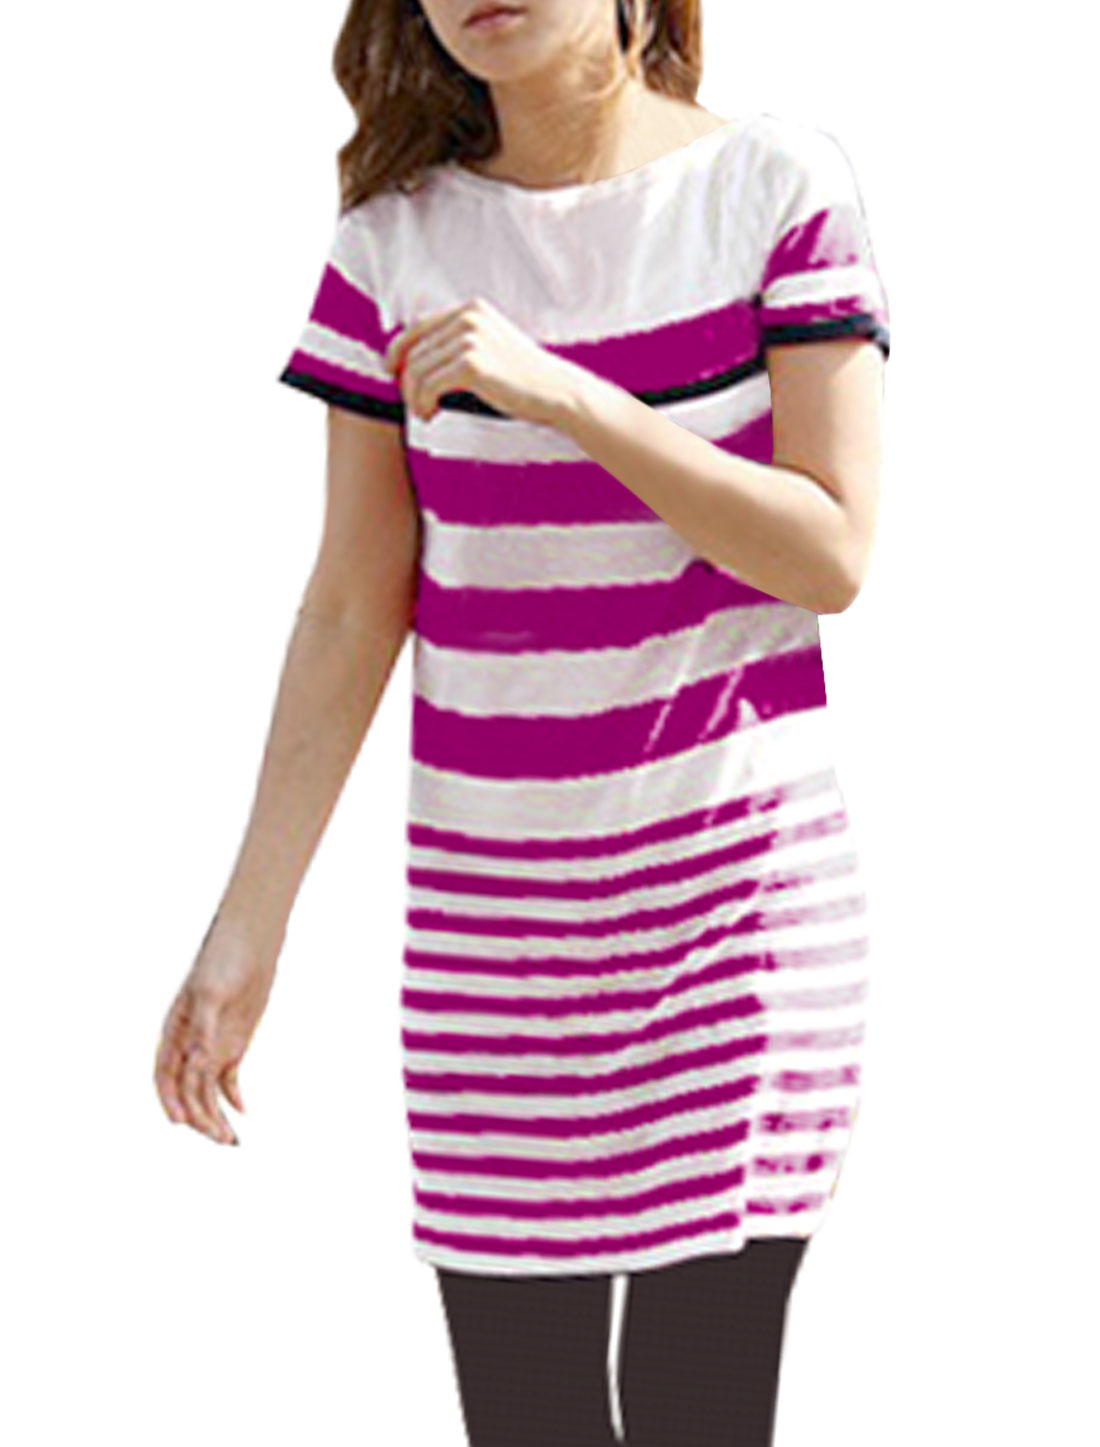 Woman Red White Bar Stripe Boat Neck Short Sleeve Knit Tunic Shirt S